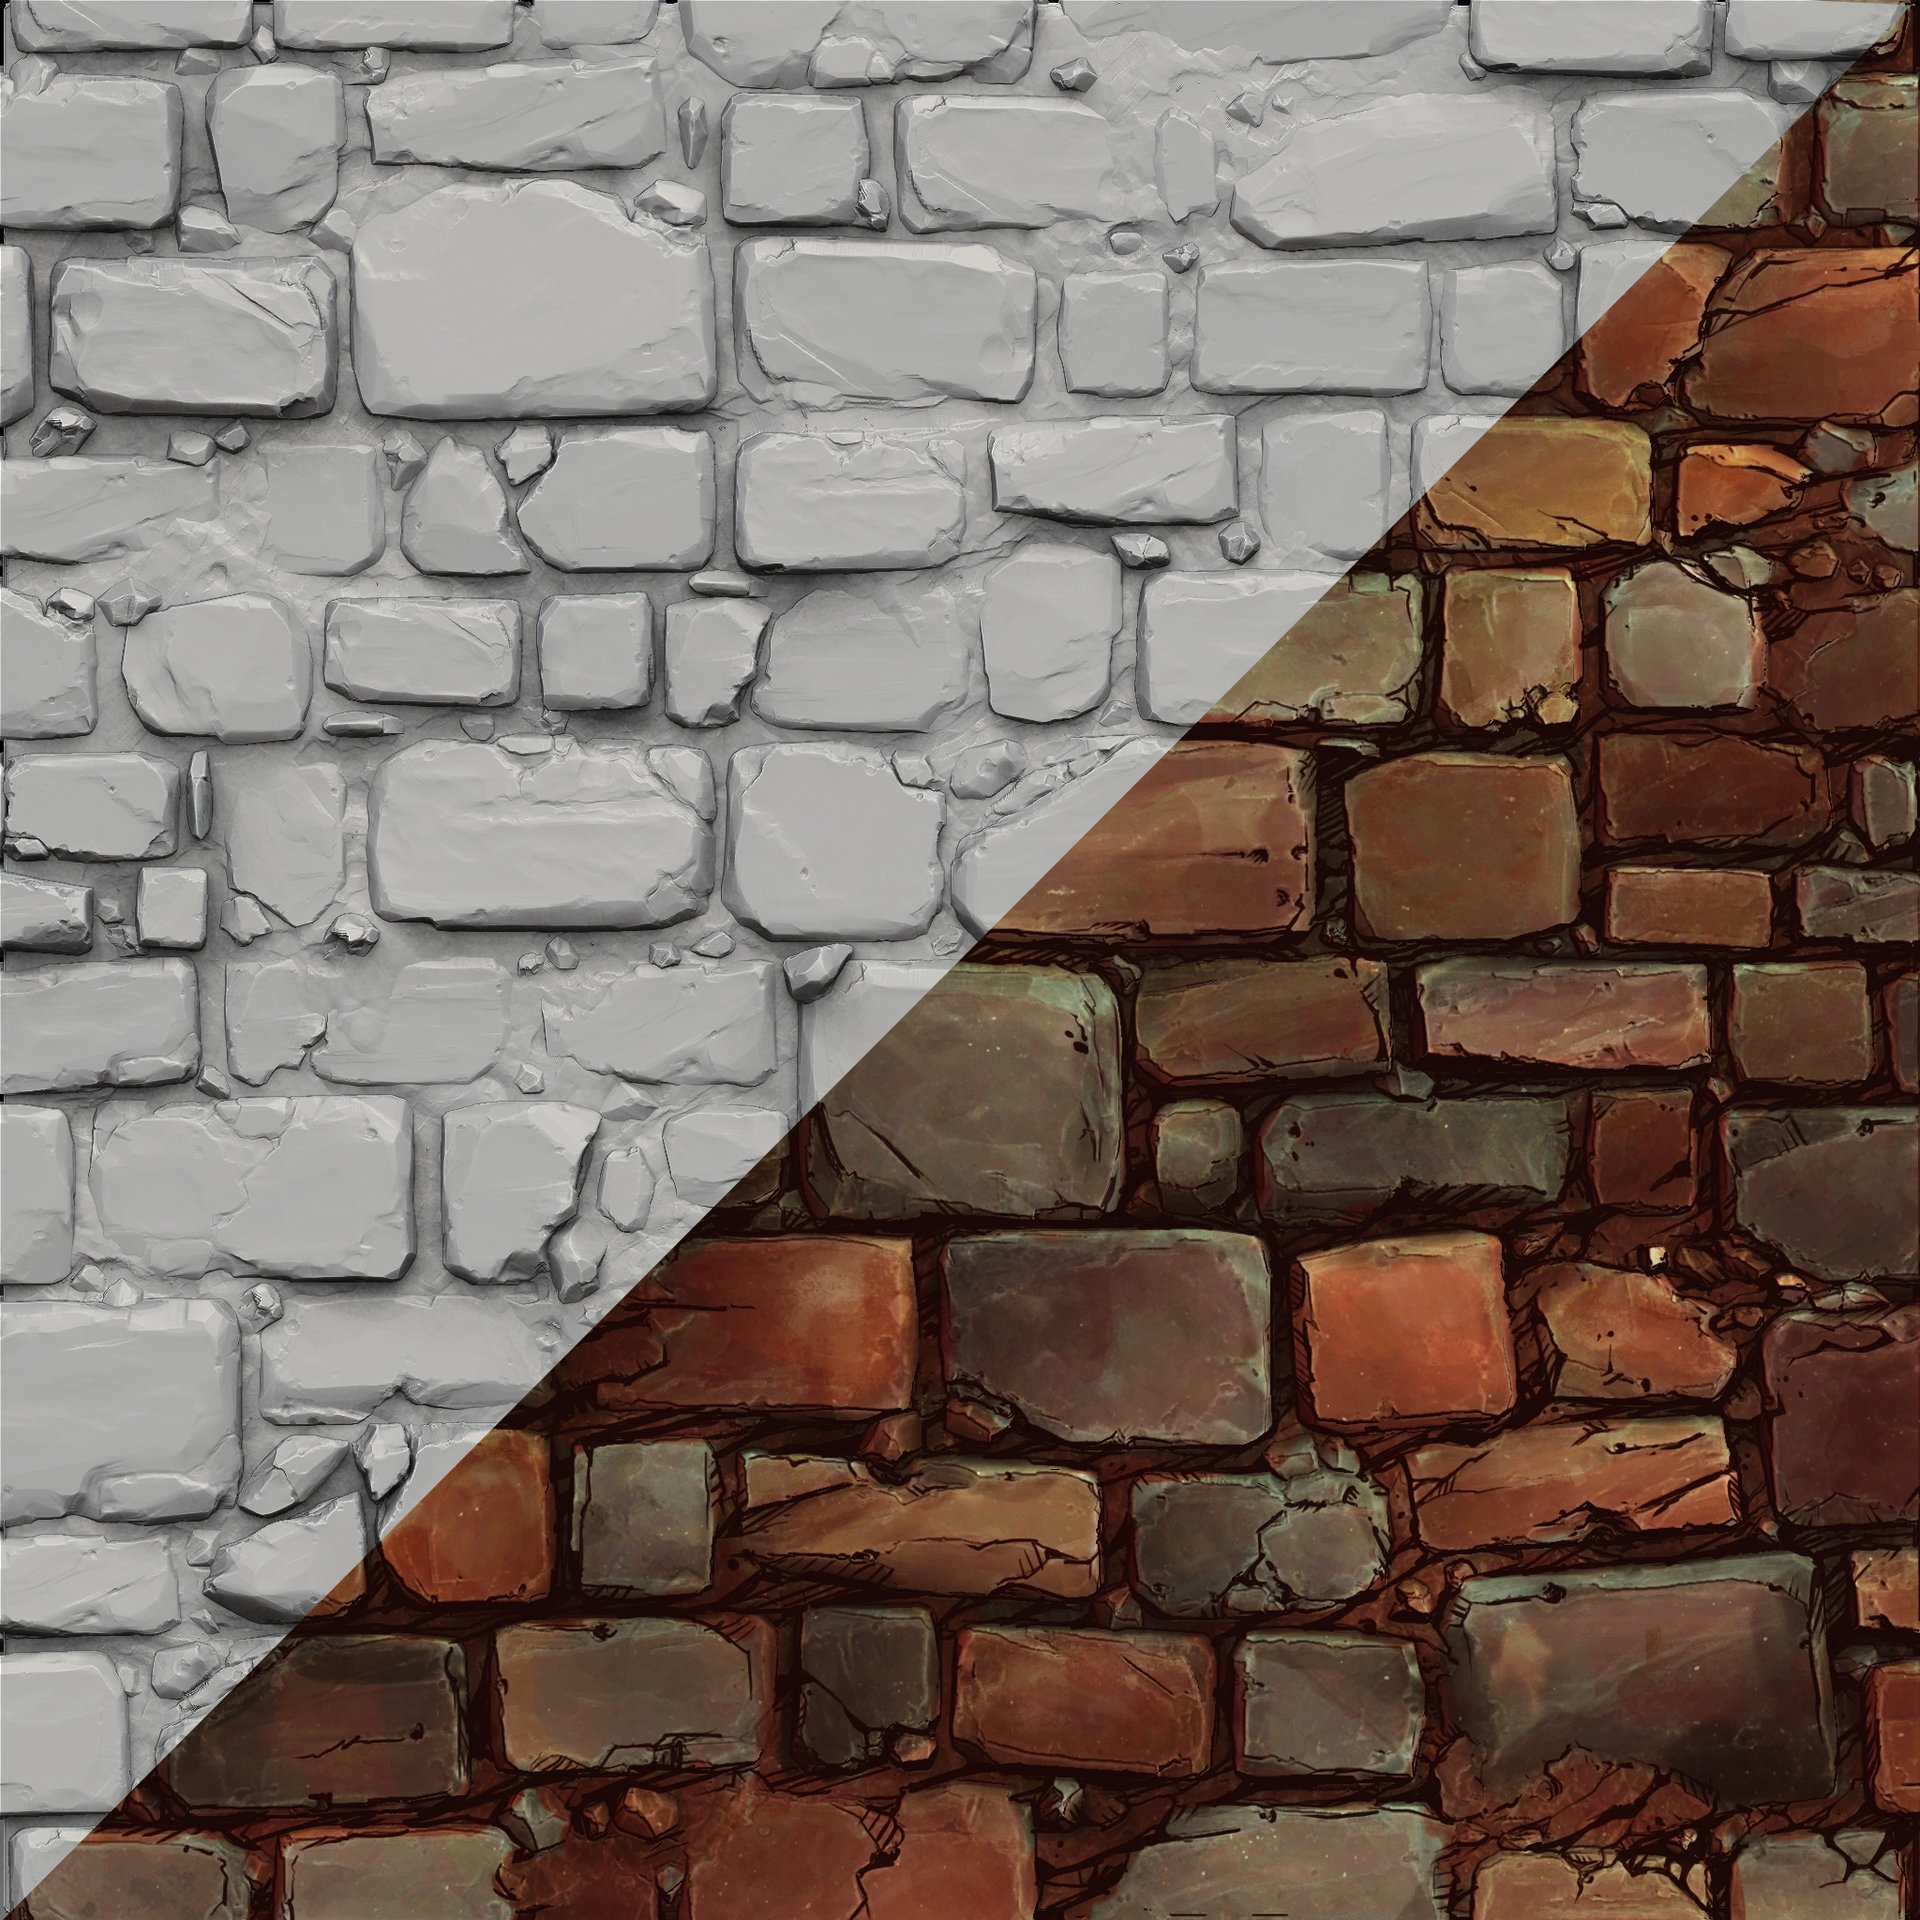 Most Current 3D Brick Wall Art Within Artstation – Brick Wall Sculpt And Comic Style Texture, Jesse (View 13 of 15)